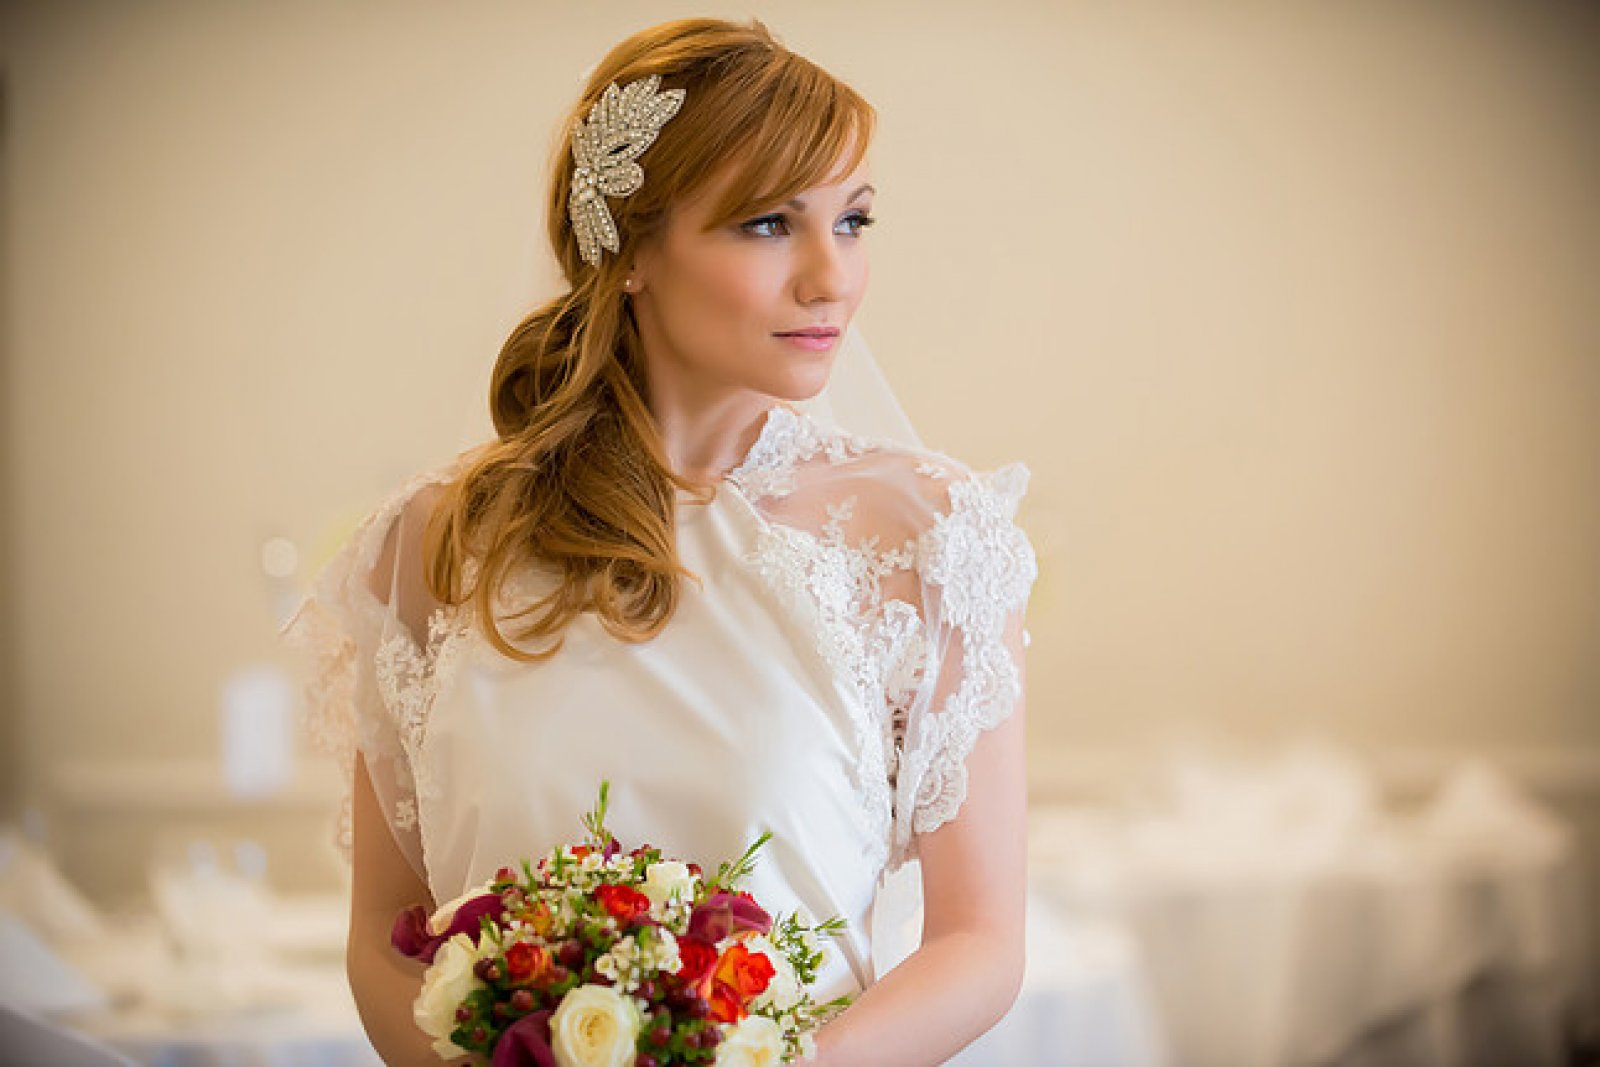 tricia d'costa wedding hair and makeup